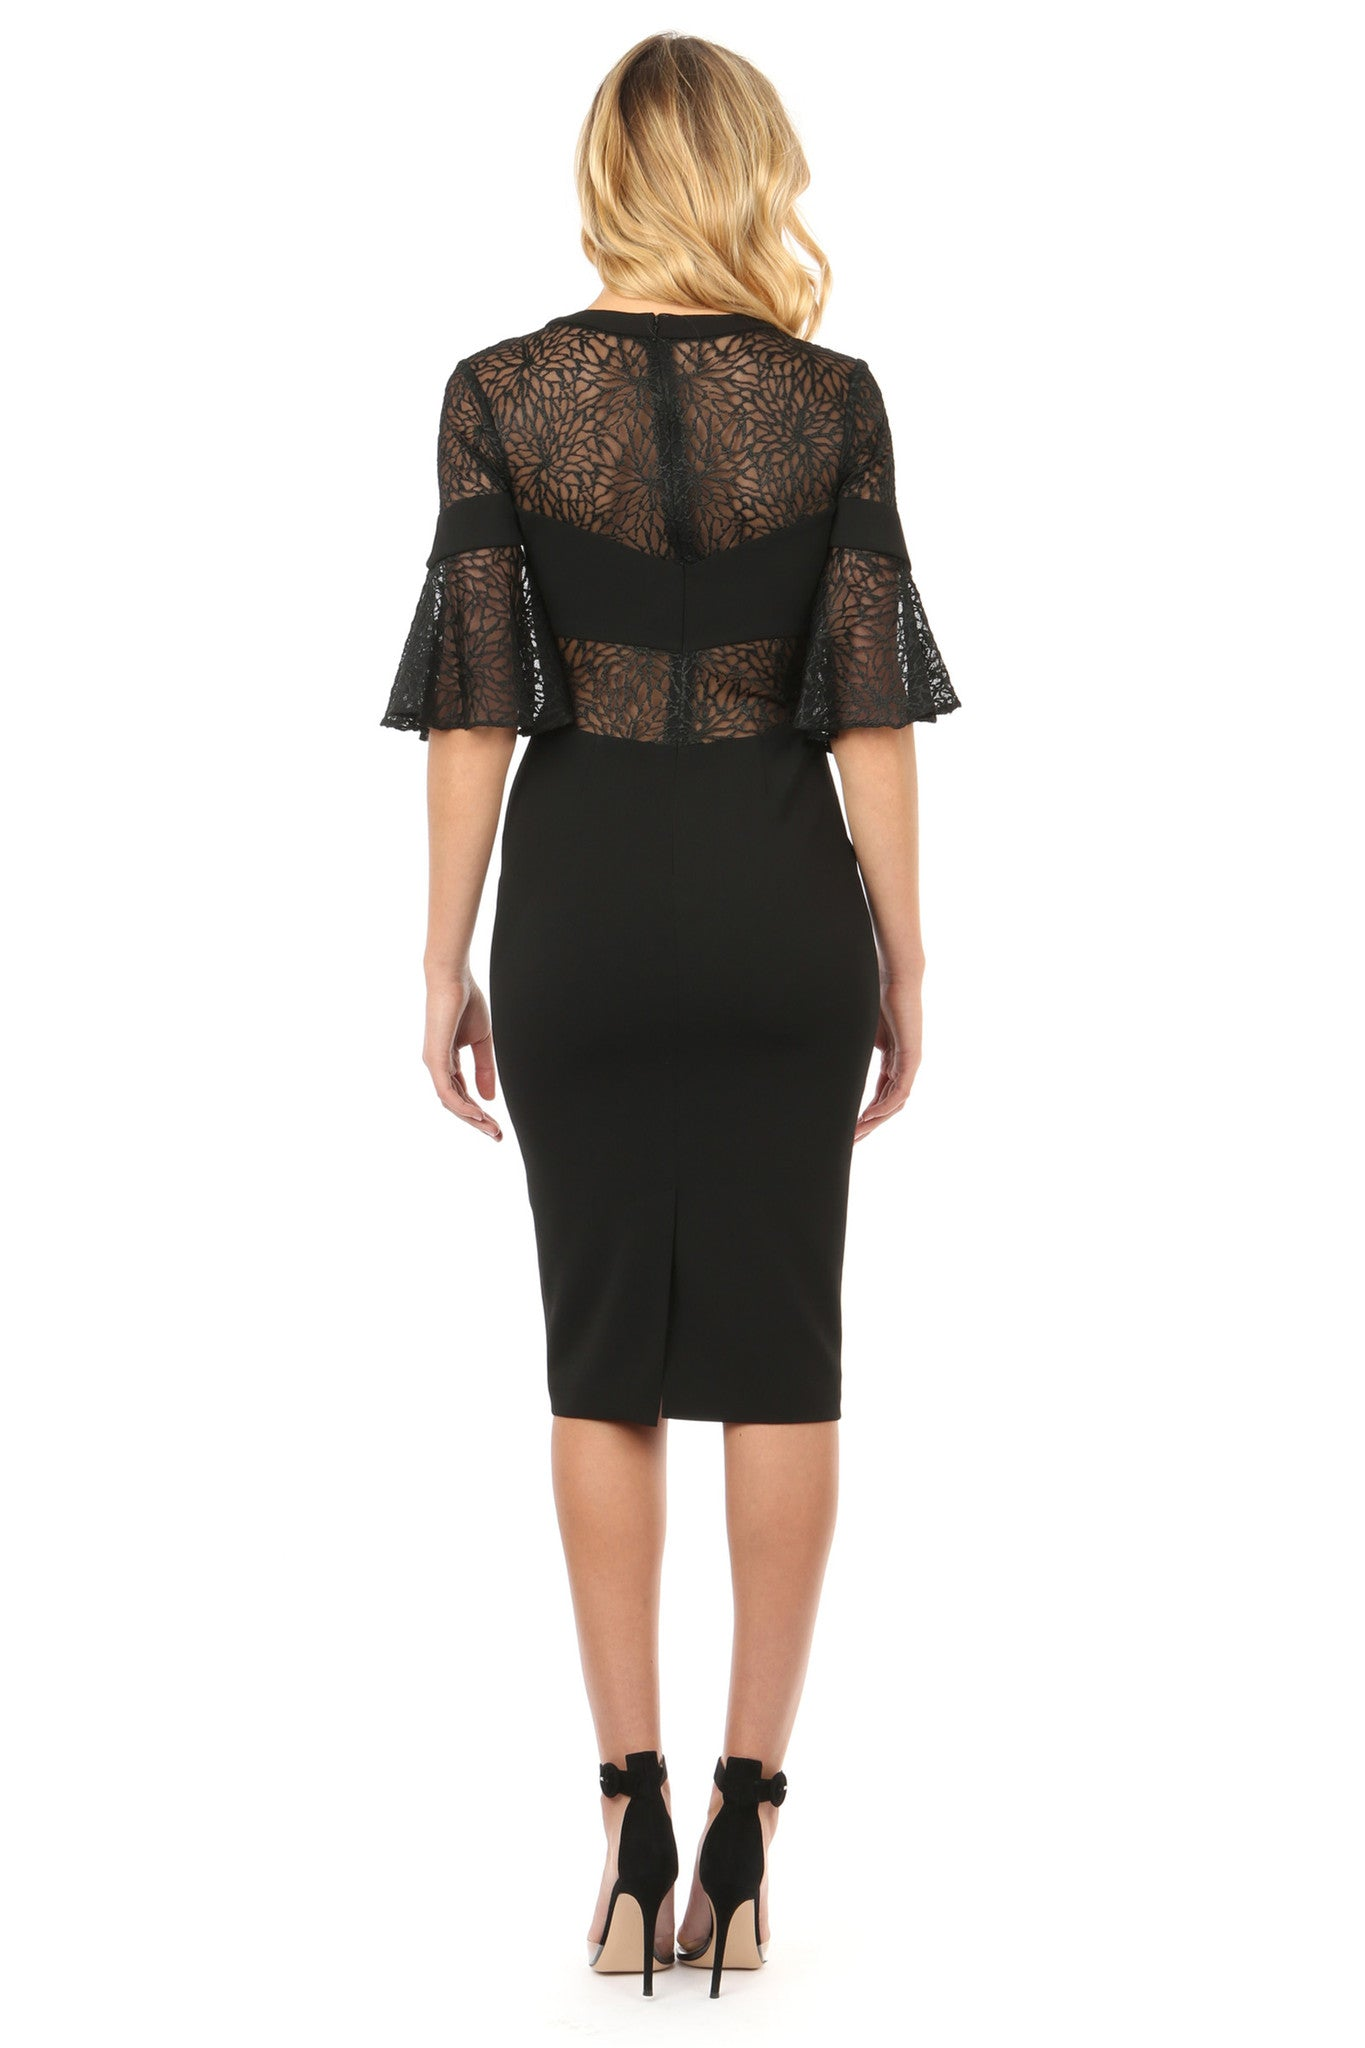 Jay Godfrey Black Lace Bell Sleeve Dress - Back View